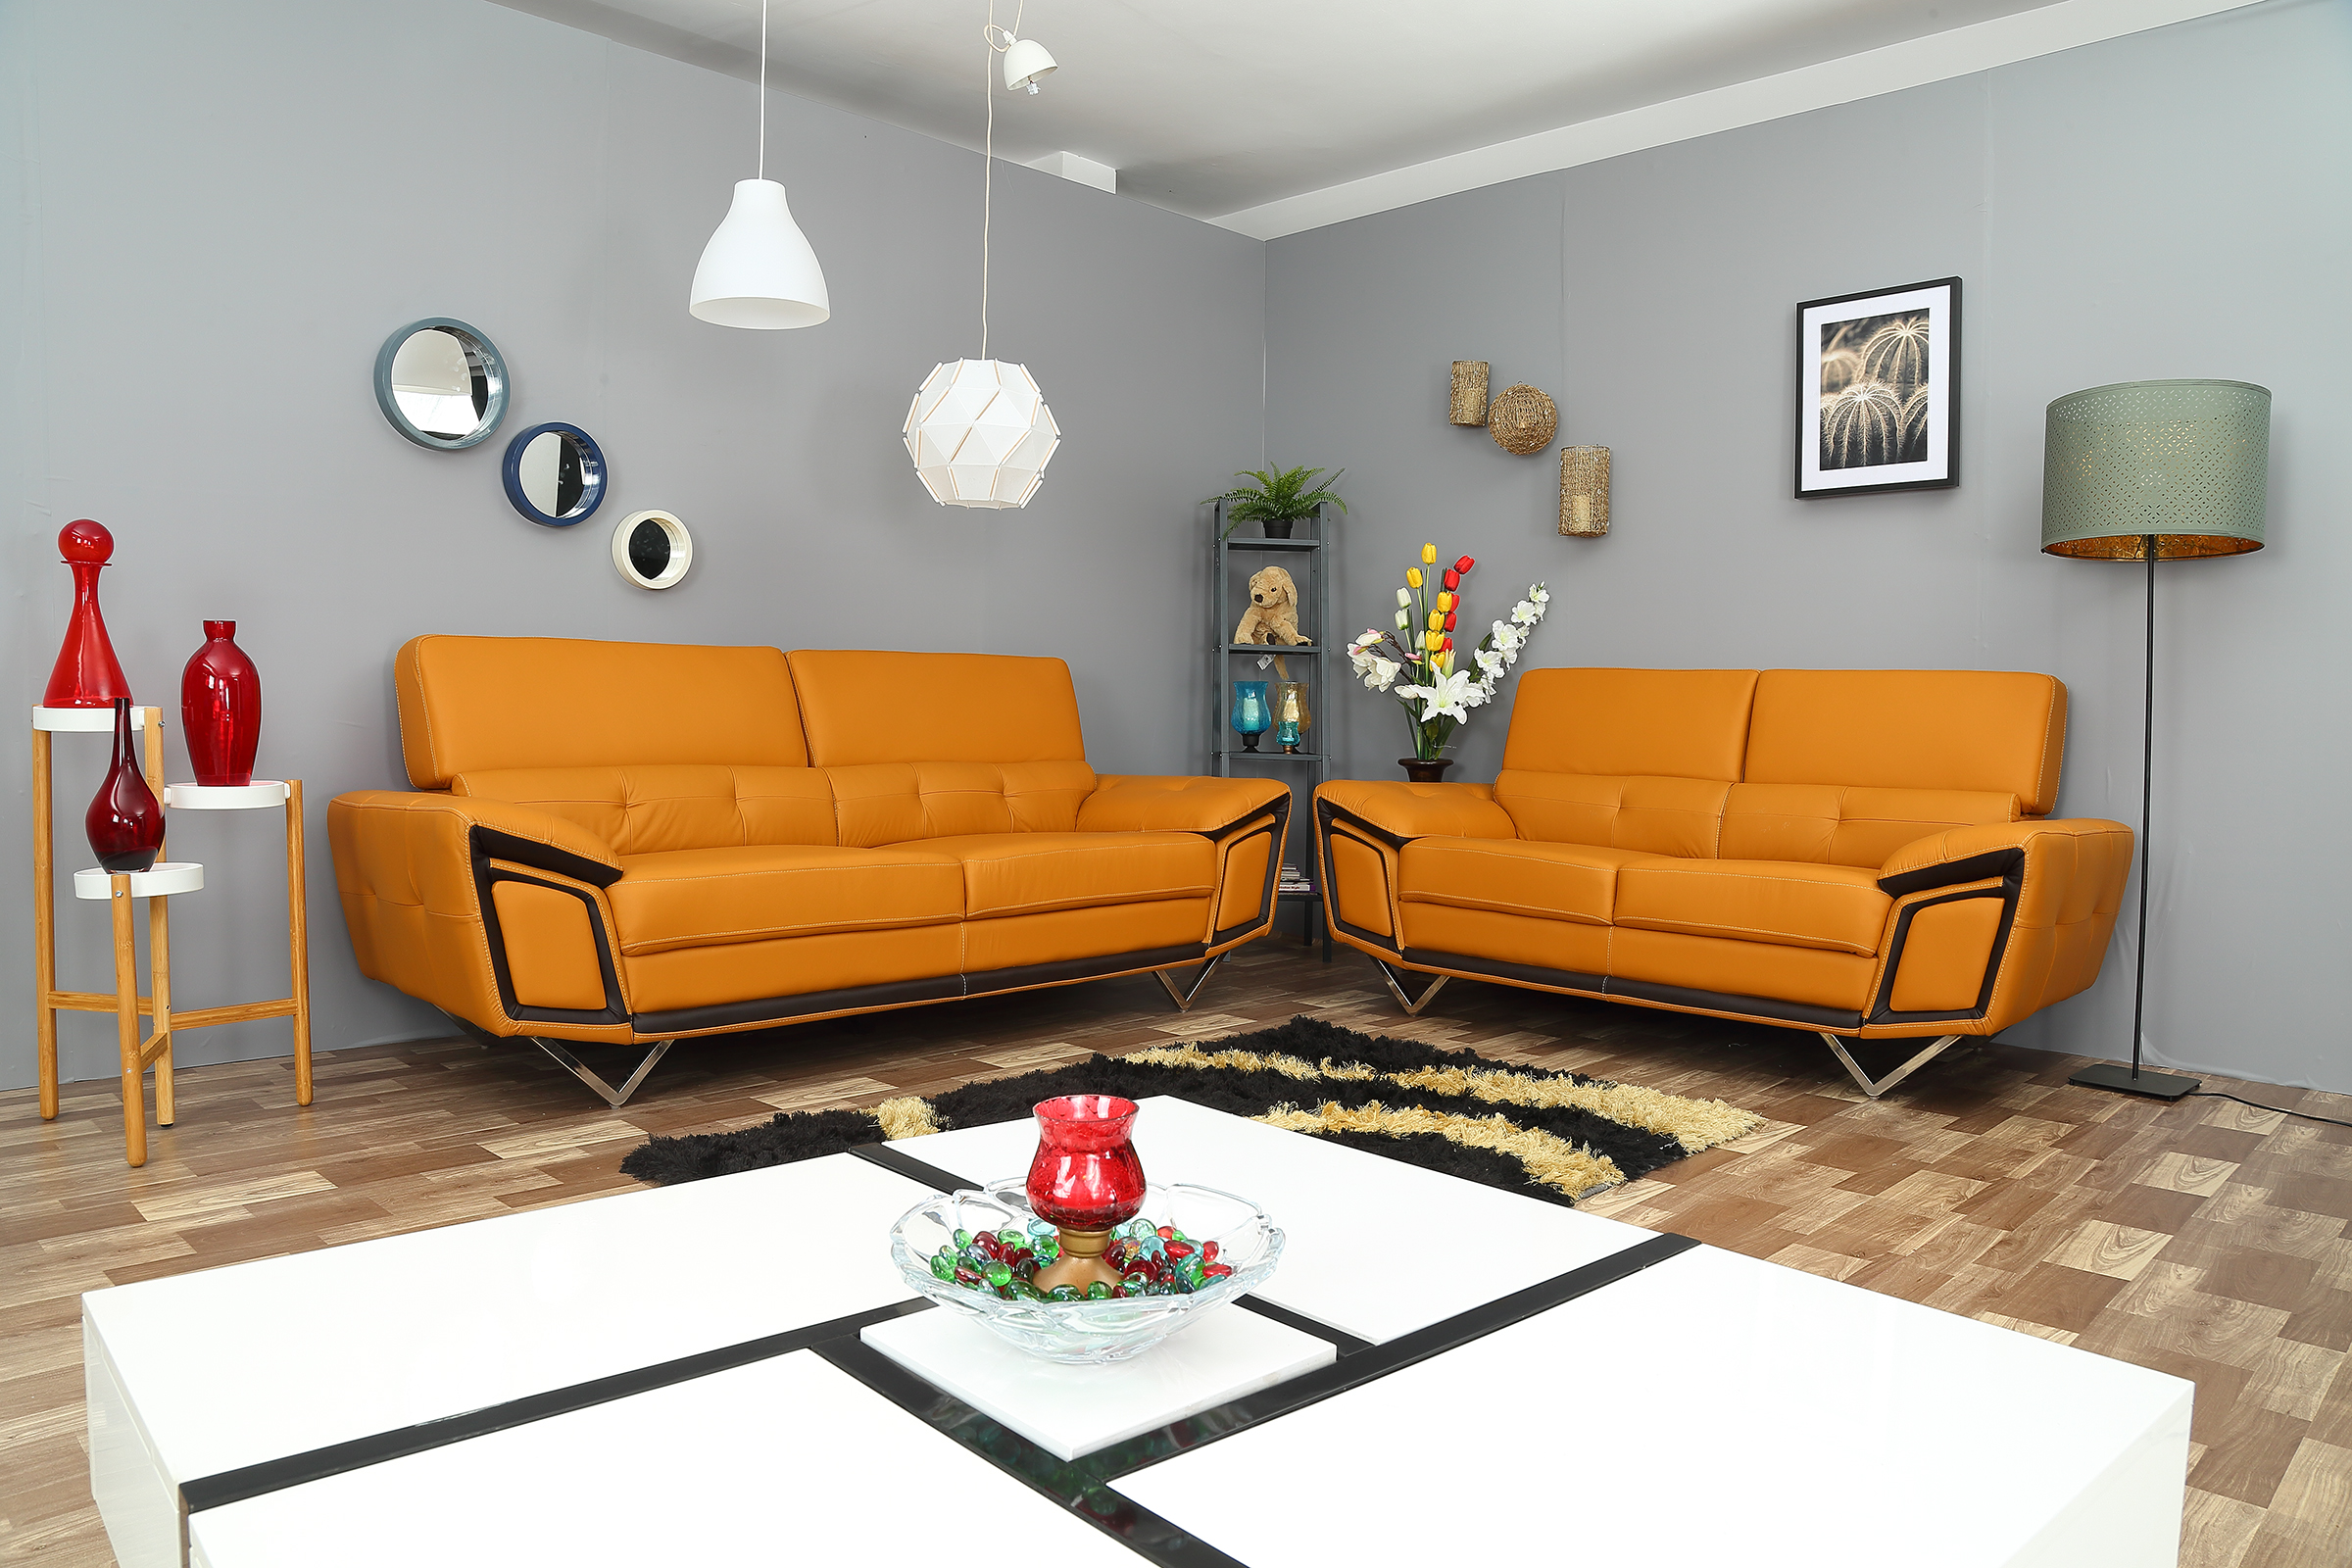 Wondrous Berlin 3 2 Seater Sofa Set Cowboy Sofas Inzonedesignstudio Interior Chair Design Inzonedesignstudiocom